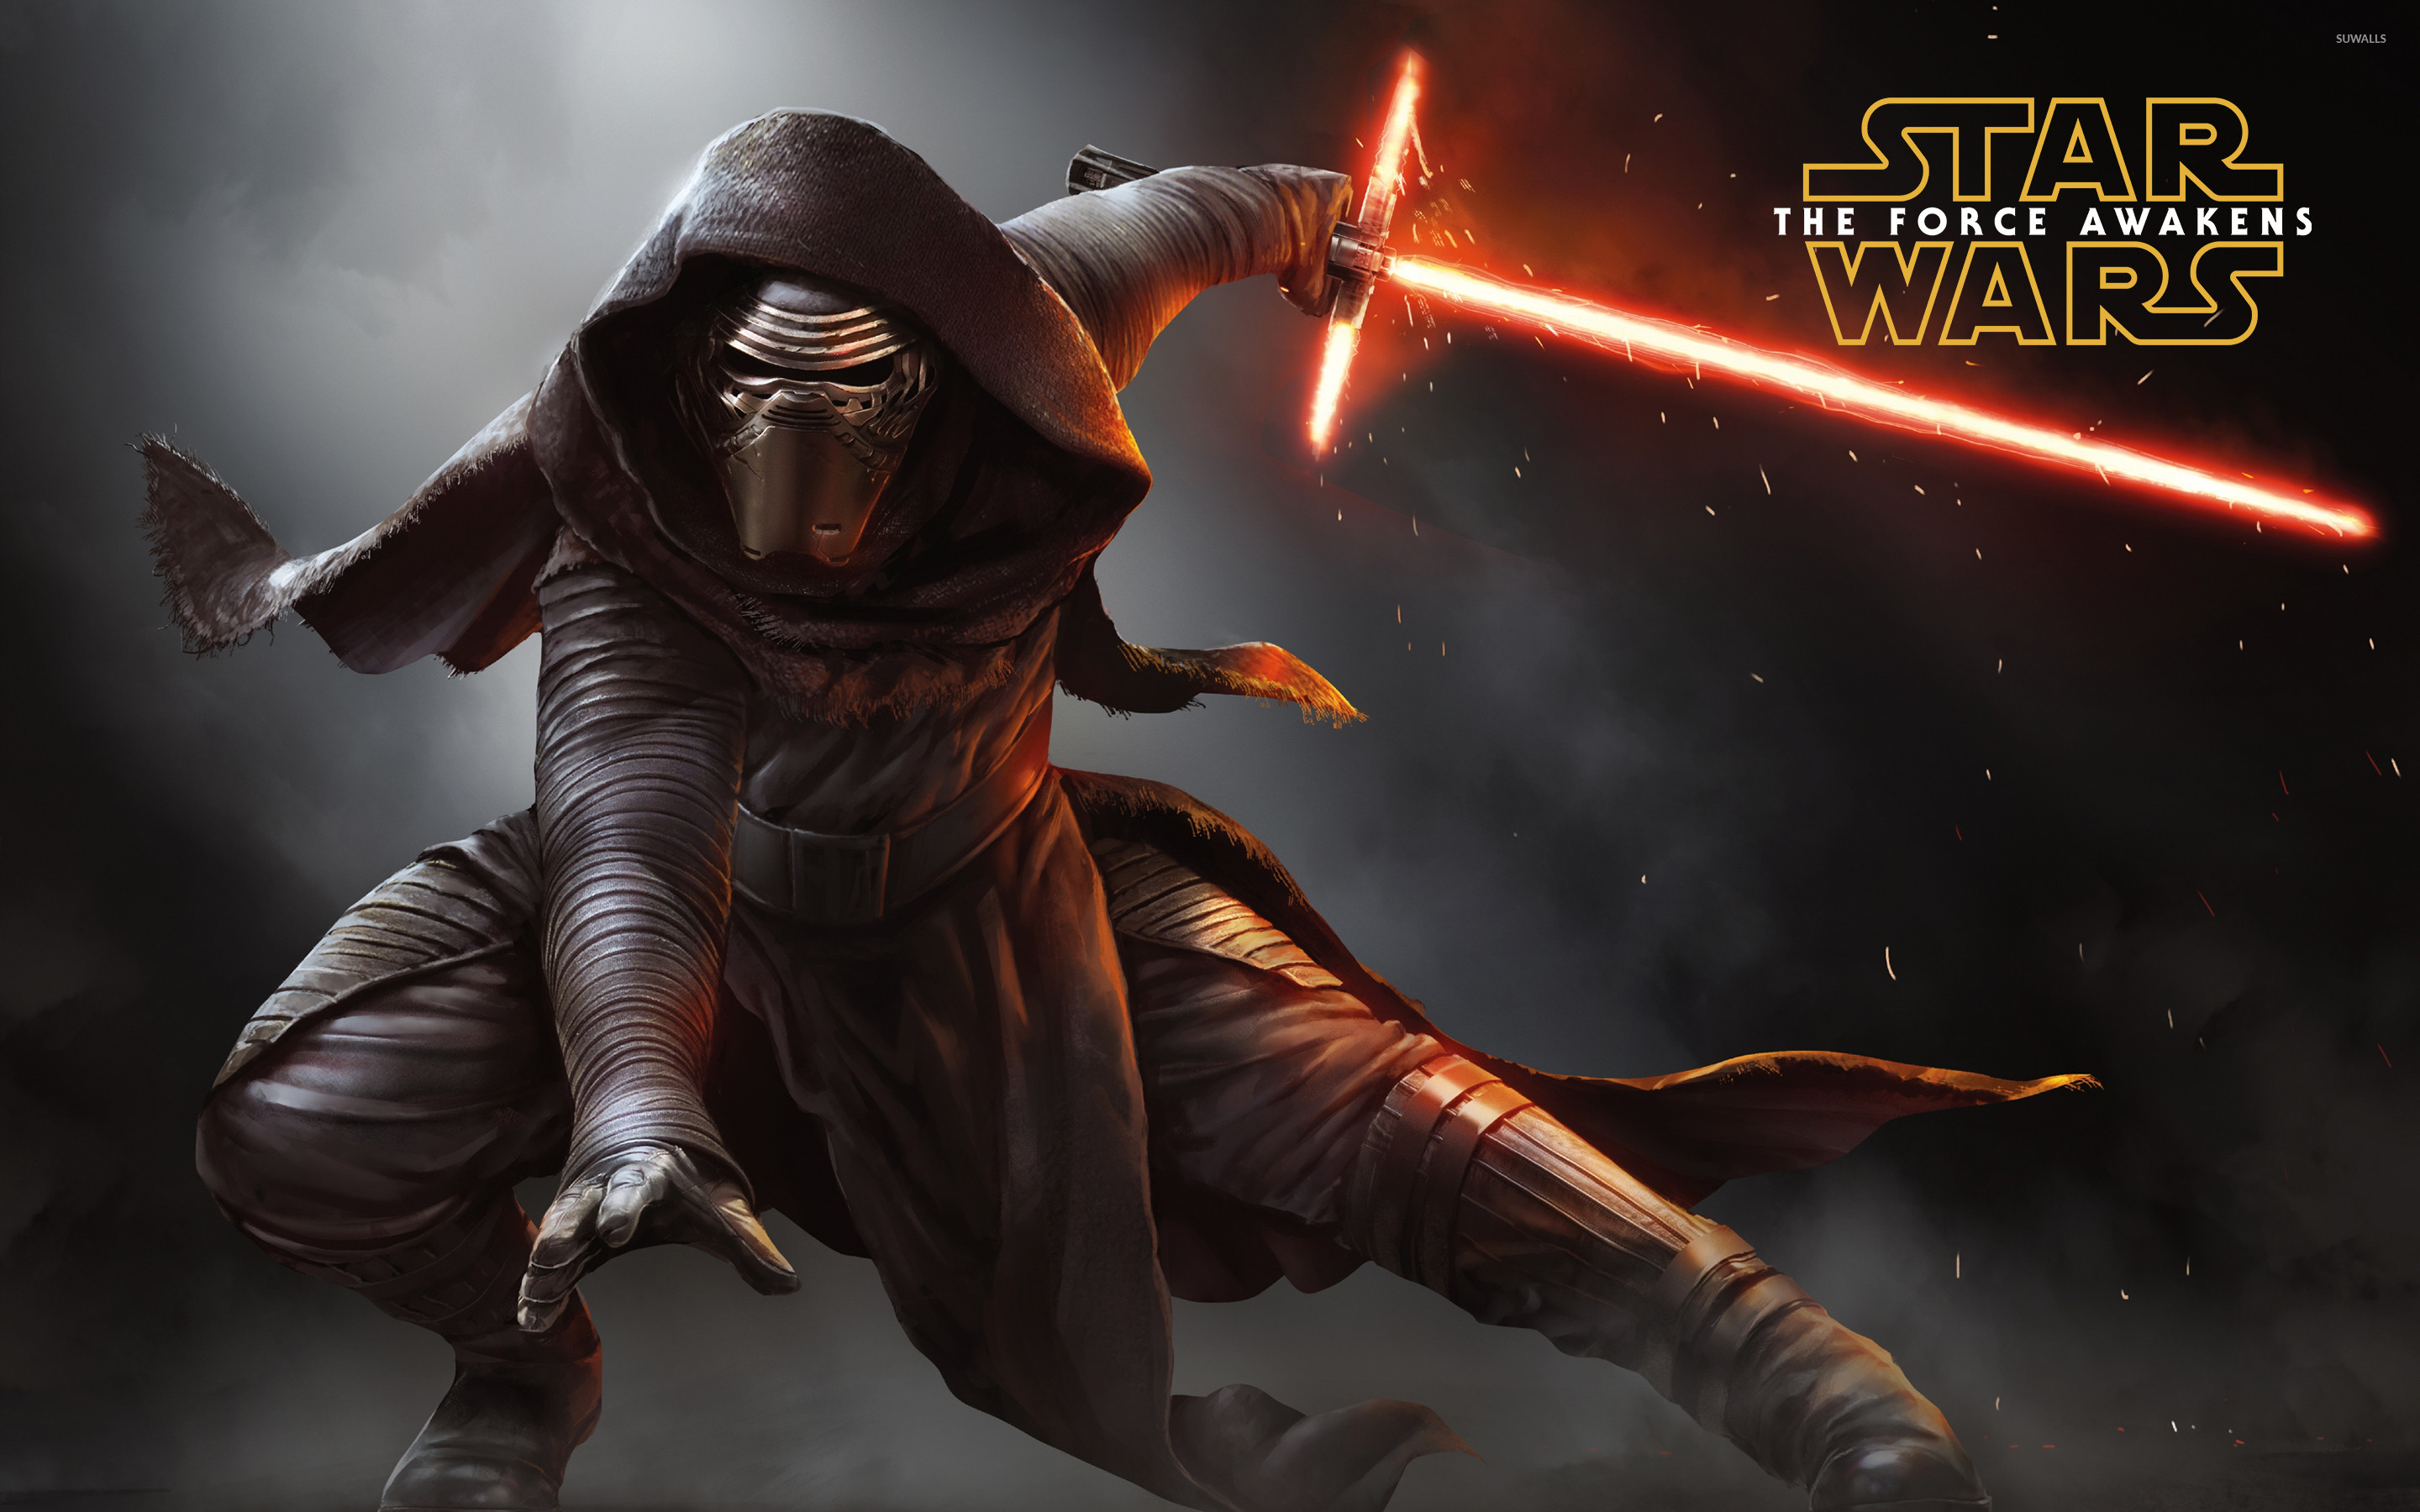 Kylo Ren The Force Awakens Wallpapers: Star Wars Lightsaber Duel Wallpapers (70+ Background Pictures